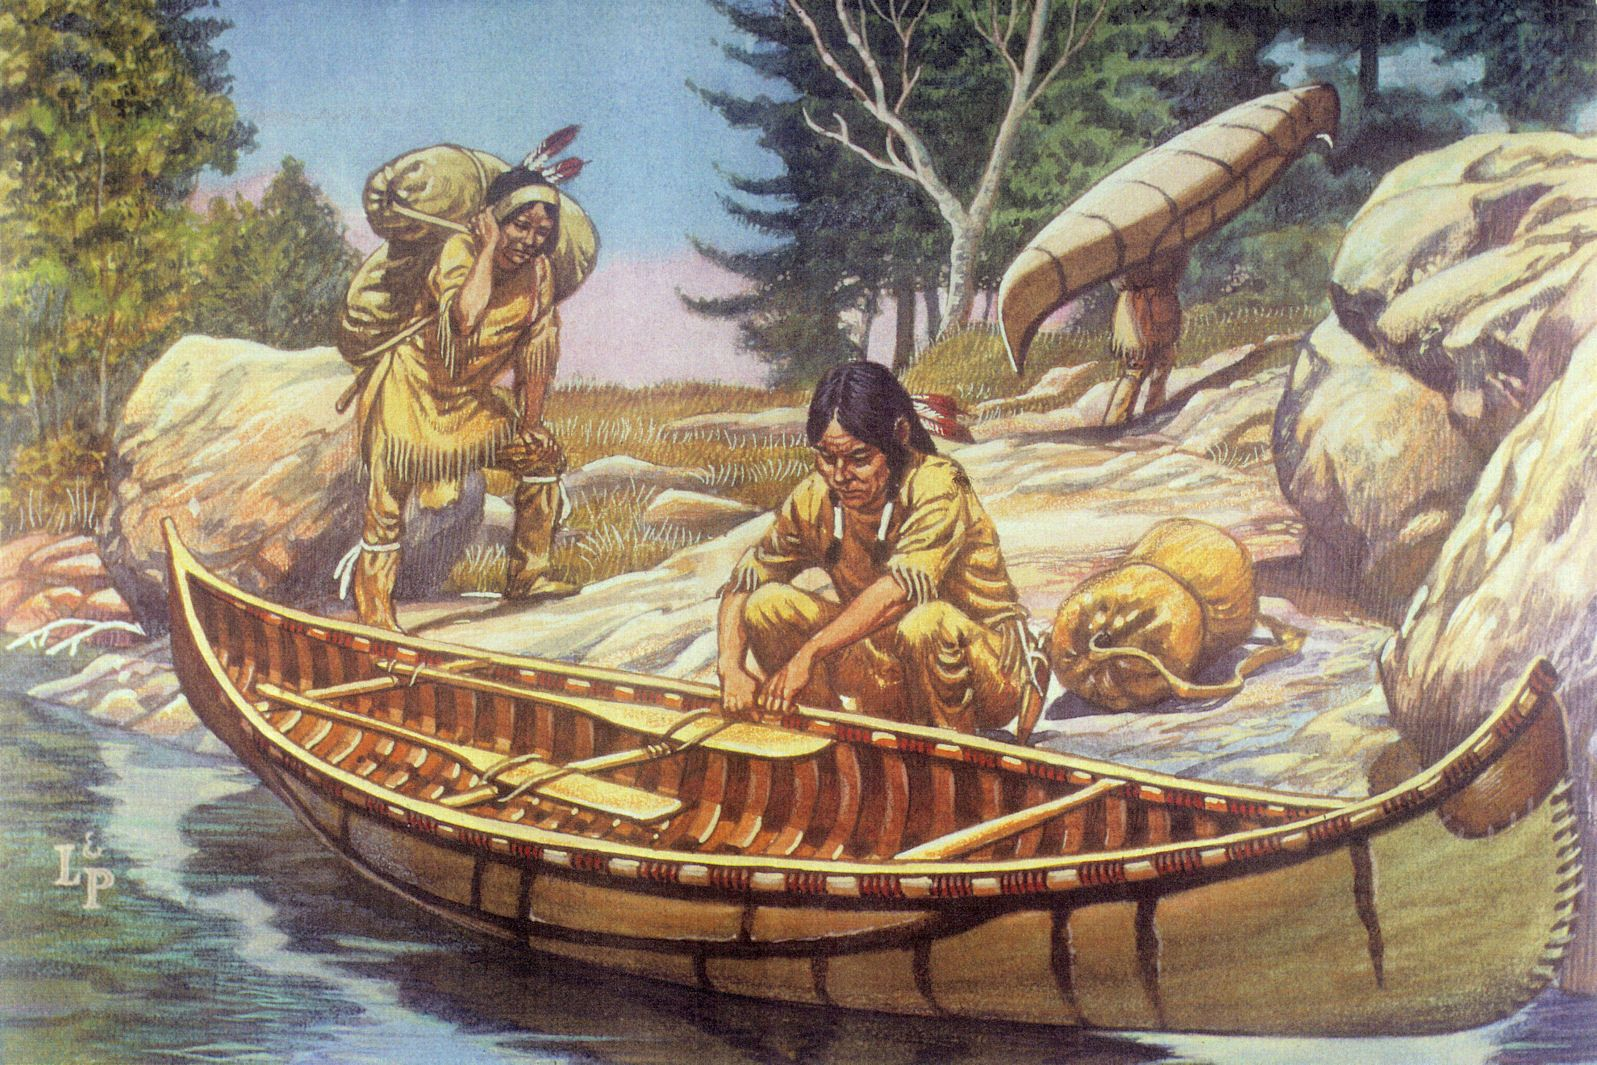 an analysis of huron indian myth Explore native american encyclopedia's board huron wyandot on pinterest |  see more ideas about native american indians, native american and native  american men  showing haunting human faces and depictions of animals, with  analysis ongoing  marius barbeau, huron and wyandot mythology, ottawa.